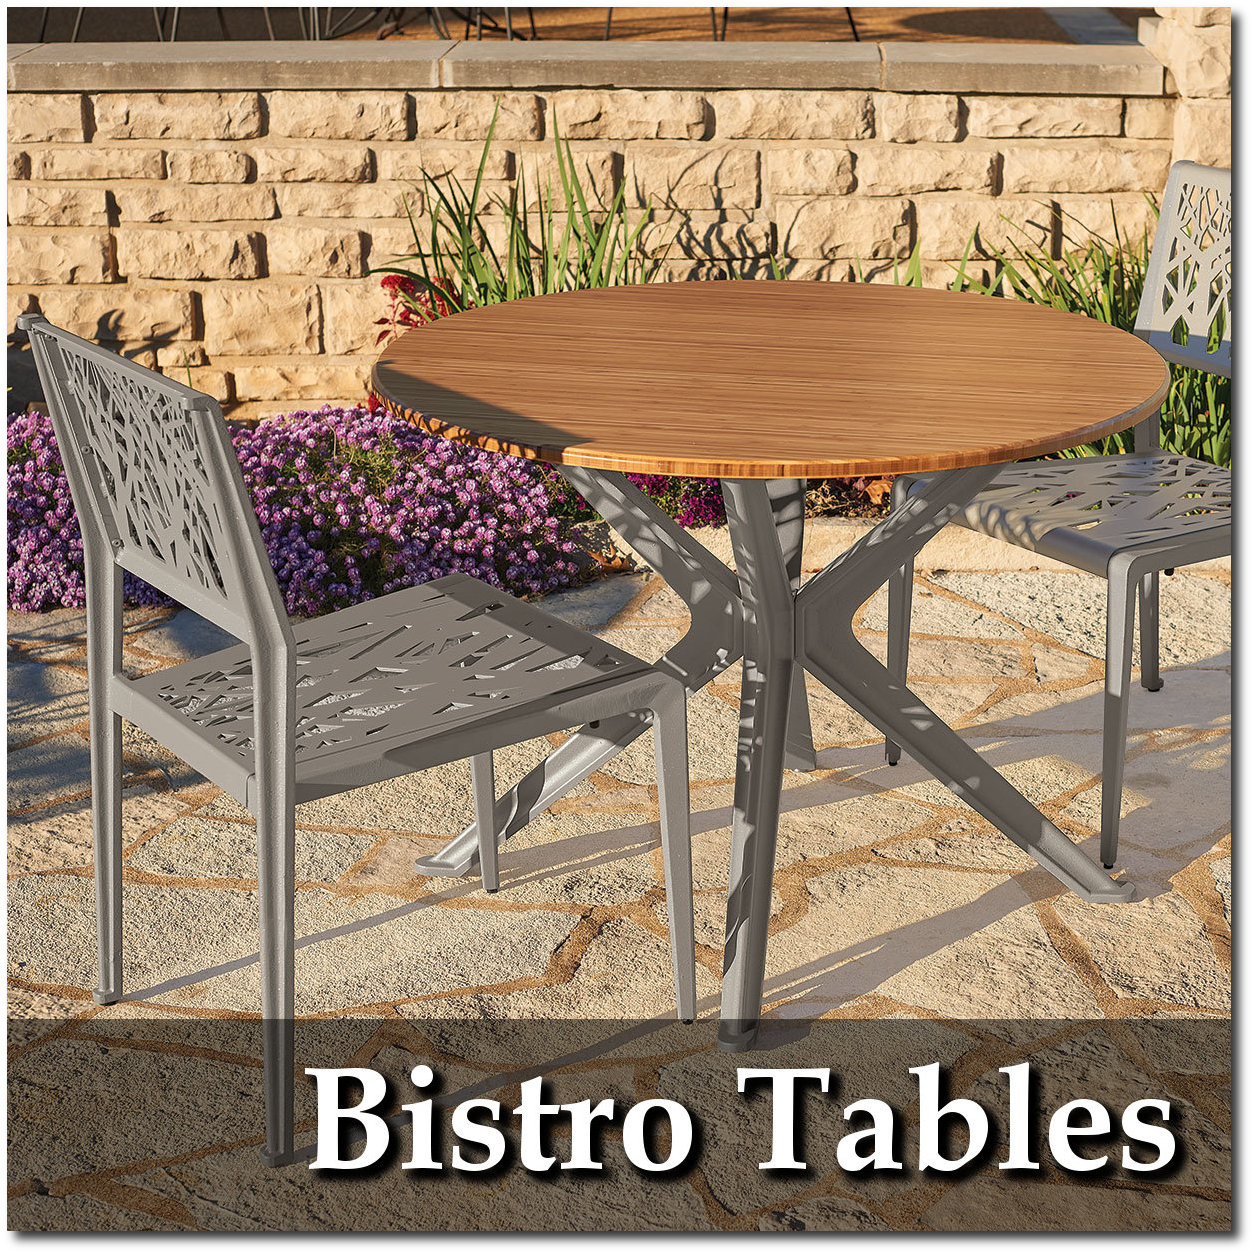 Airi Collection bistro Tables